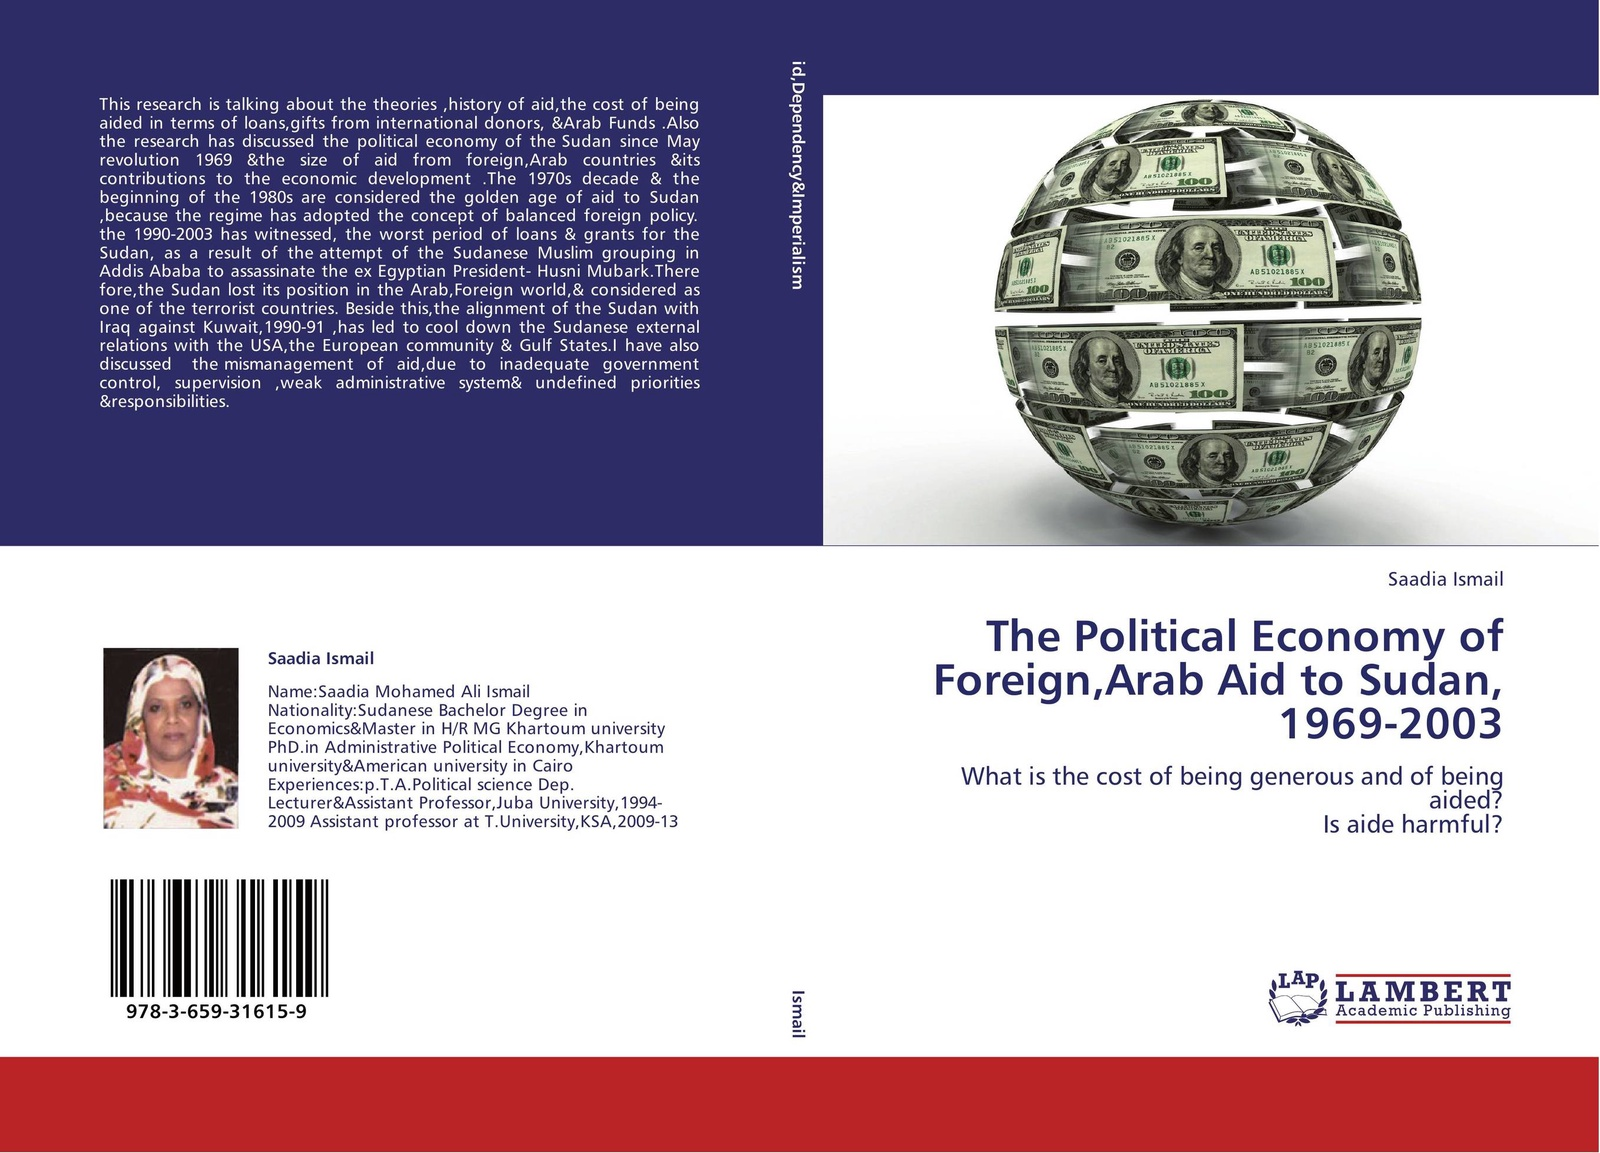 Saadia Ismail The Political Economy of Foreign,Arab Aid to Sudan, 1969-2003 the rationale behind foreign aid